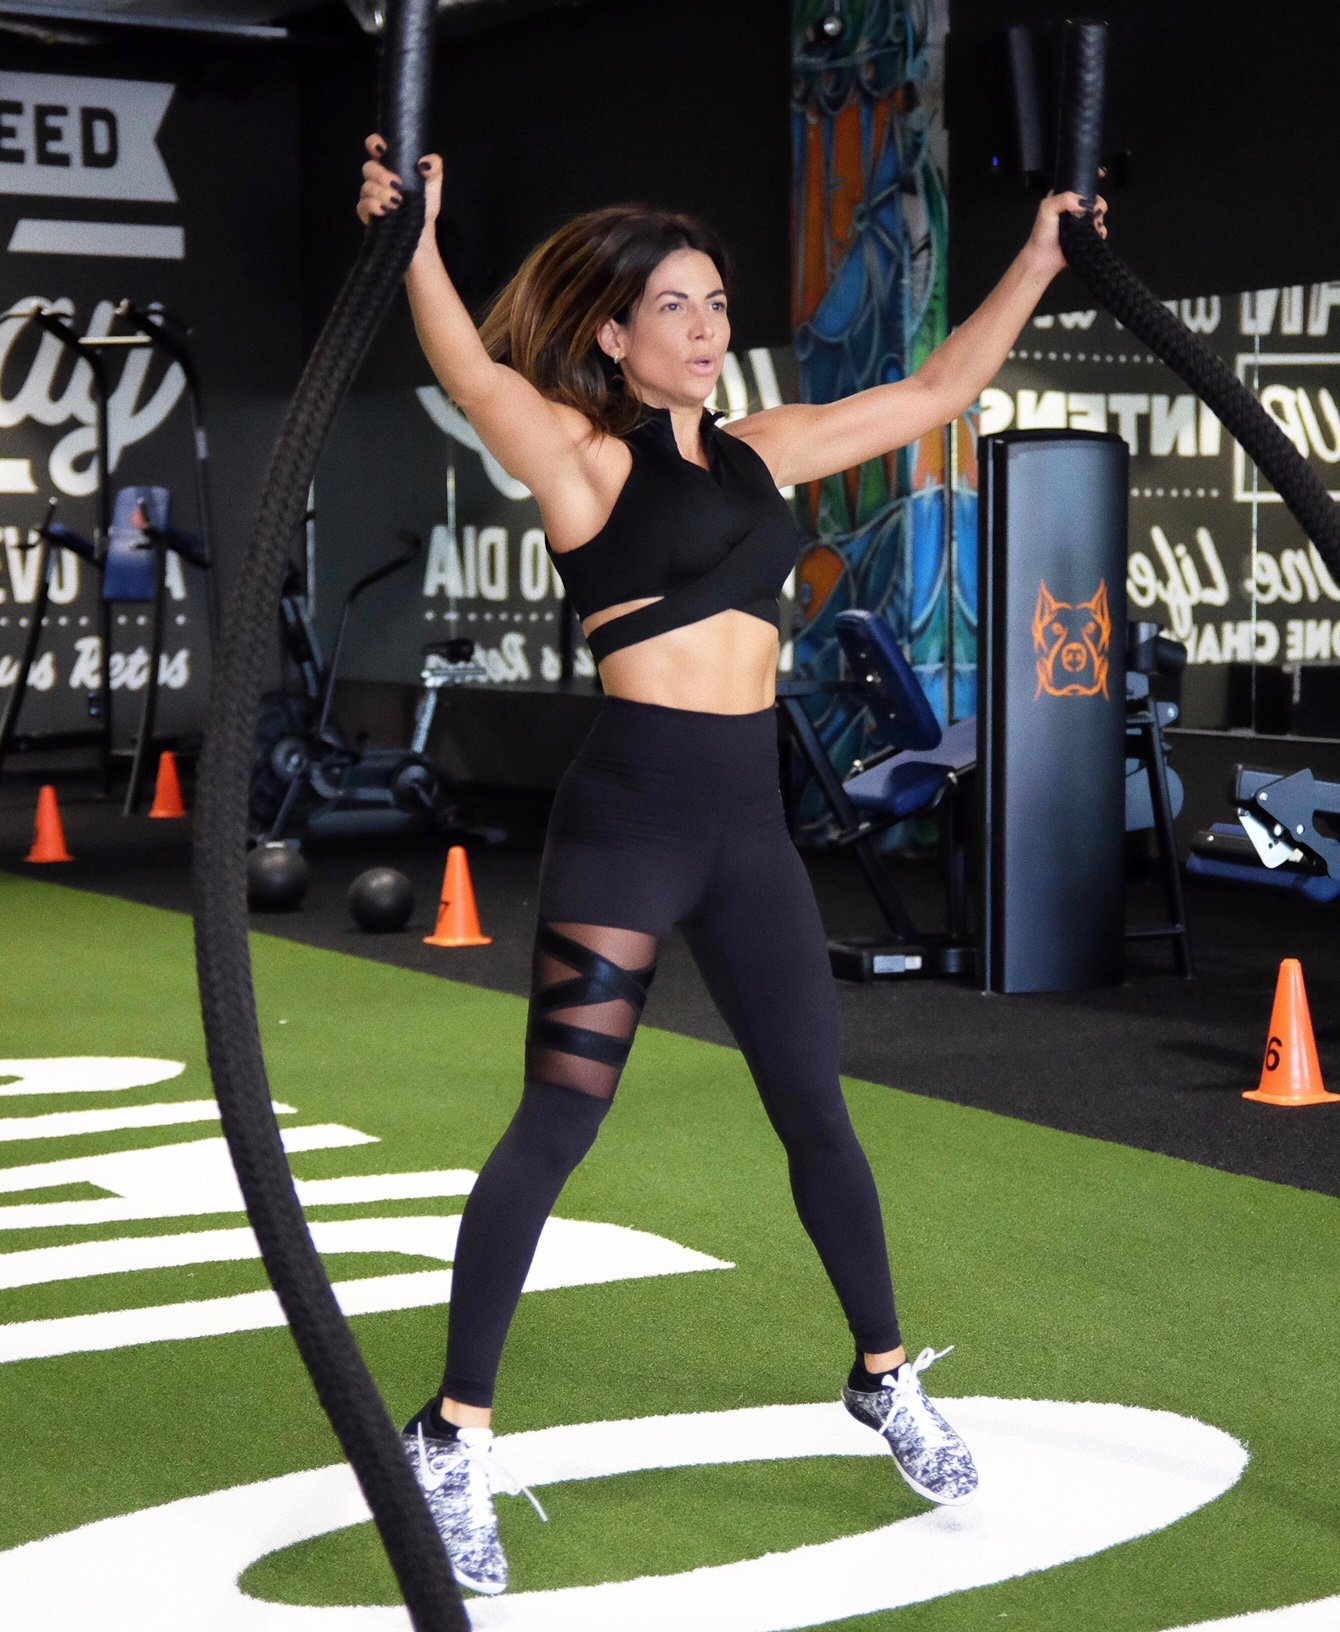 Meet Denise Diaz And Xuan Guerrero Of Legacy Fit Doral In Doral Voyage Mia Magazine Miami City Guide